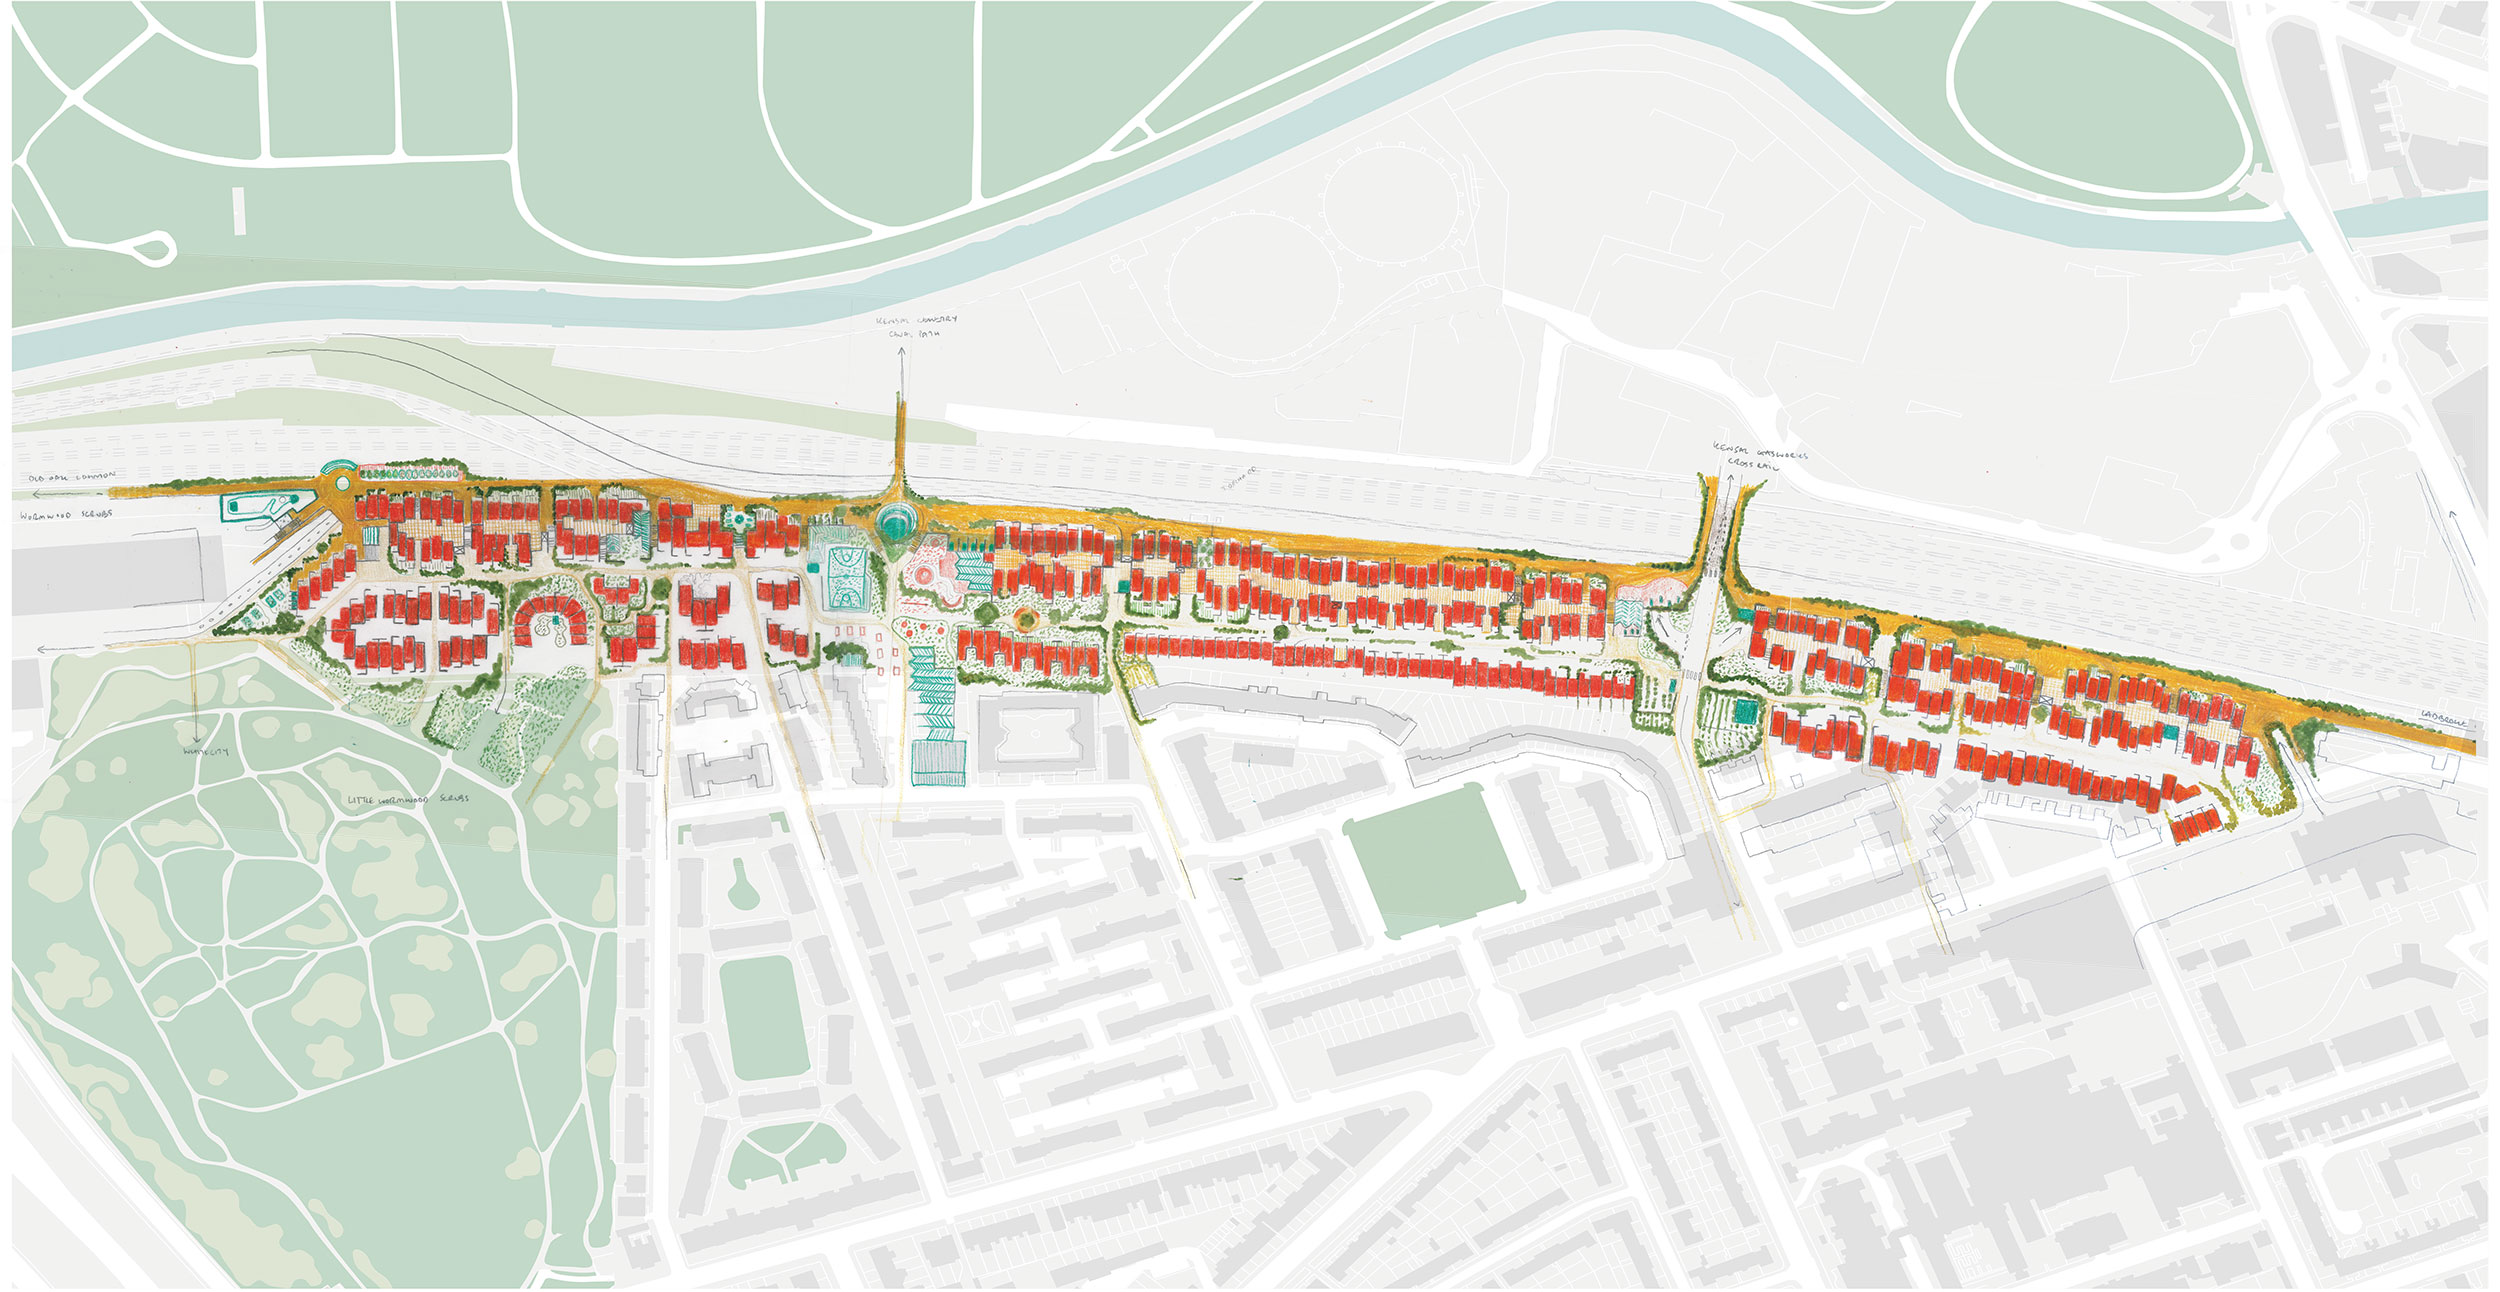 Masterplan showing how the site can be broken down to a much tighter urban grain, allowing the site to be portioned into smaller development plots for community groups or housing cooperatives.